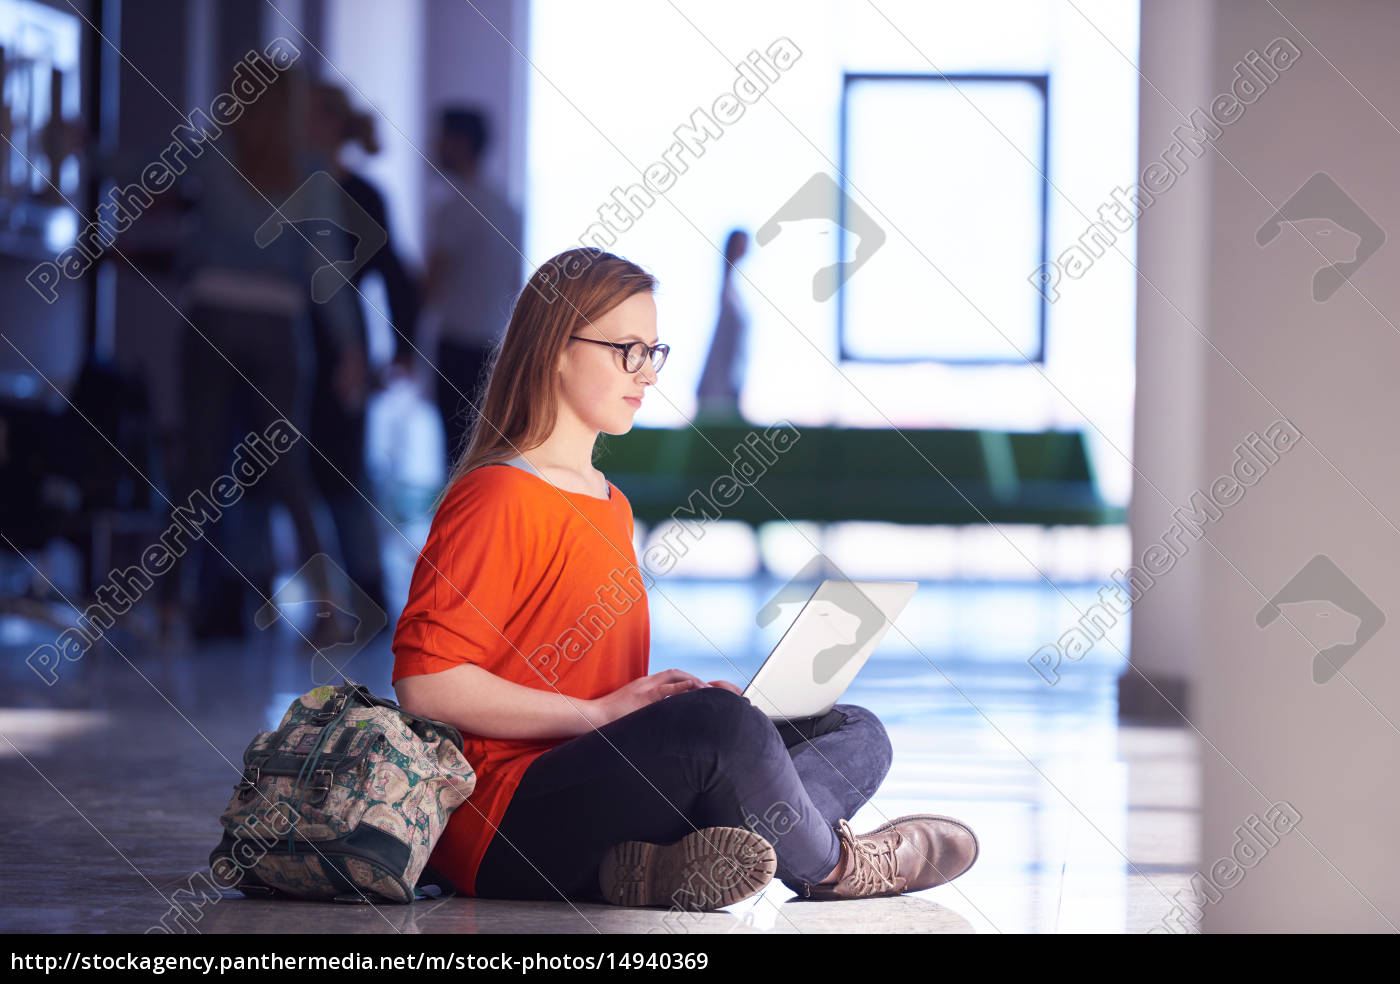 student, girl, with, laptop, computer - 14940369